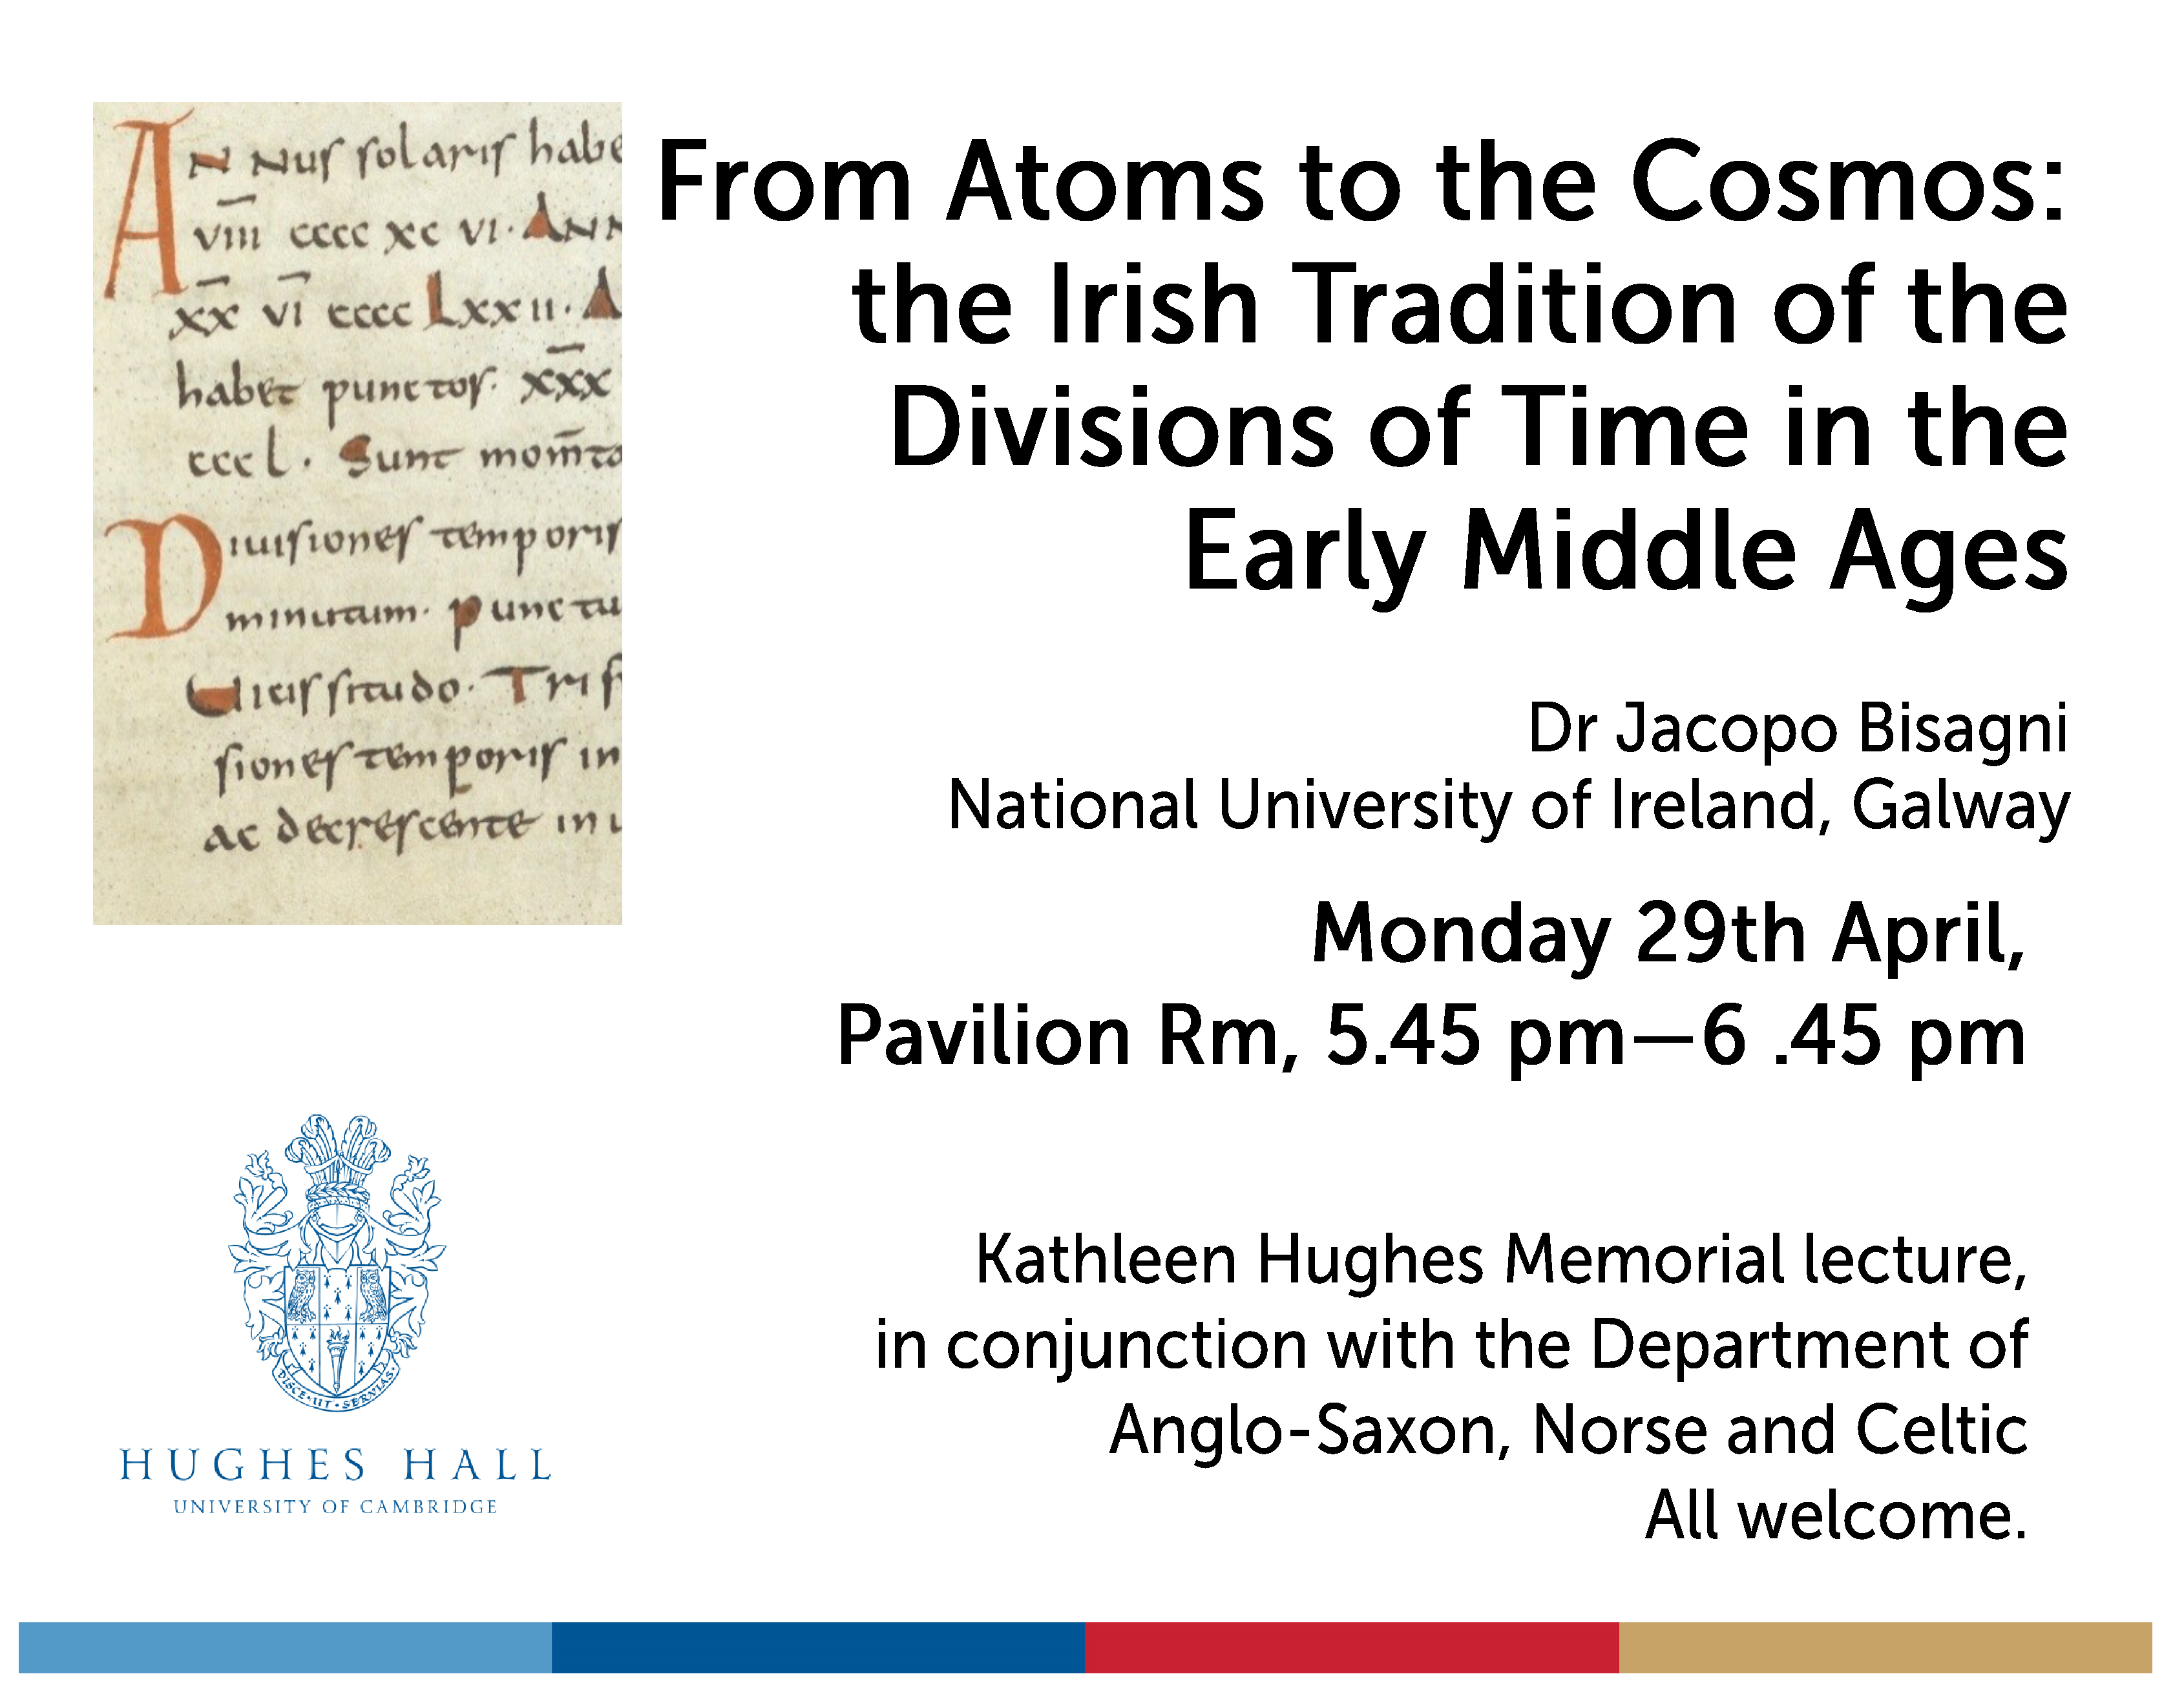 29 April 2019, Kathleen Hughes Memorial Lecture: Dr Jacopo Bisagni (NUI, Galway)